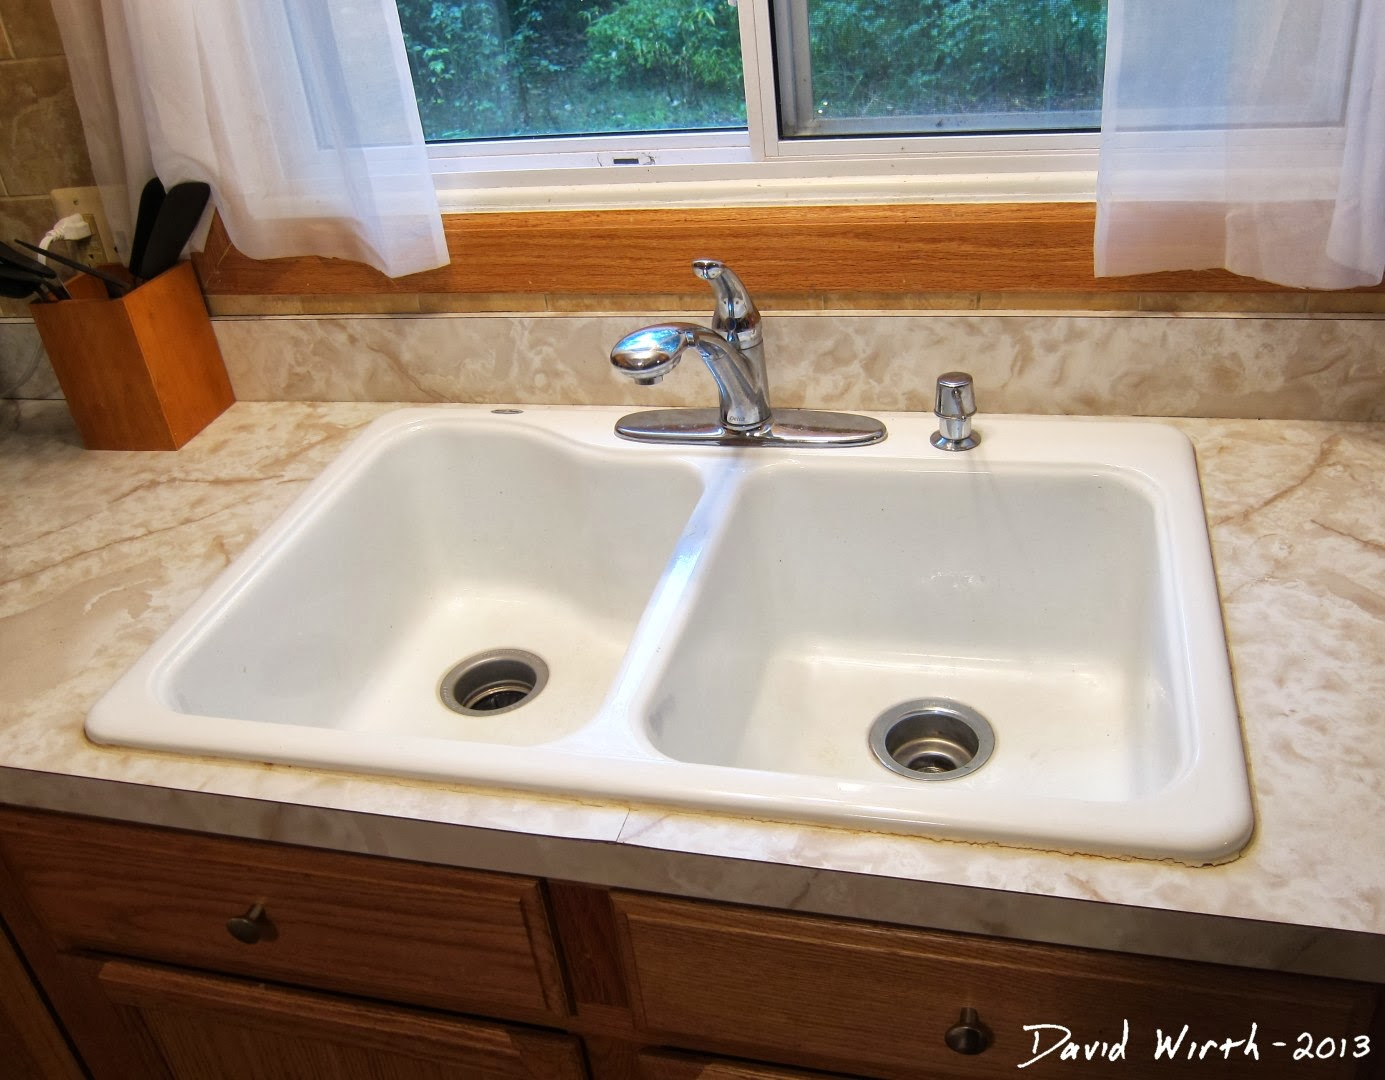 How To Caulk A Sink Tcworks Org